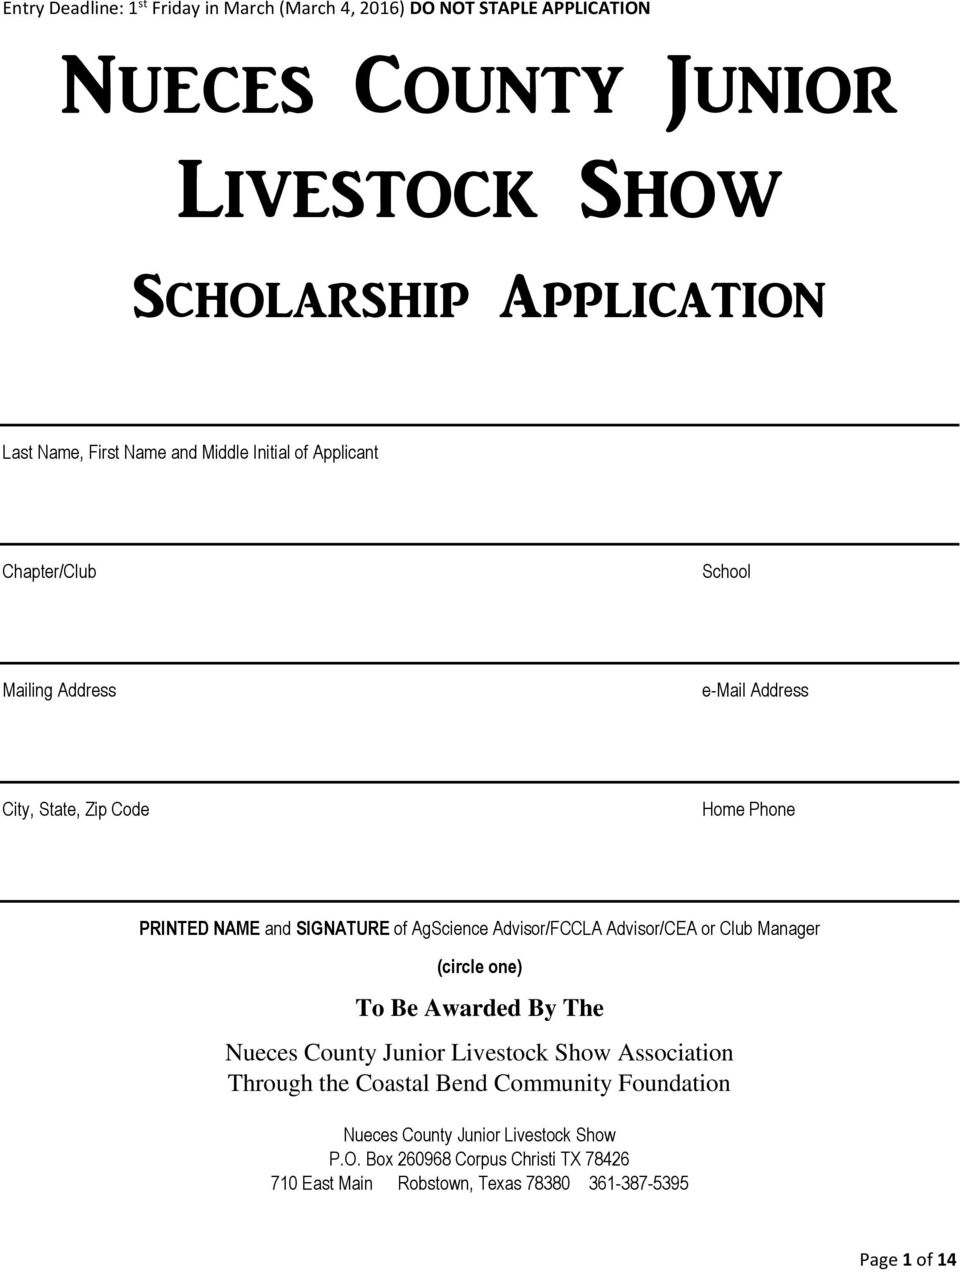 AgScience Advisor/FCCLA Advisor/CEA or Club Manager (circle one) To Be Awarded By The Nueces County Junior Livestock Show Association Through the Coastal